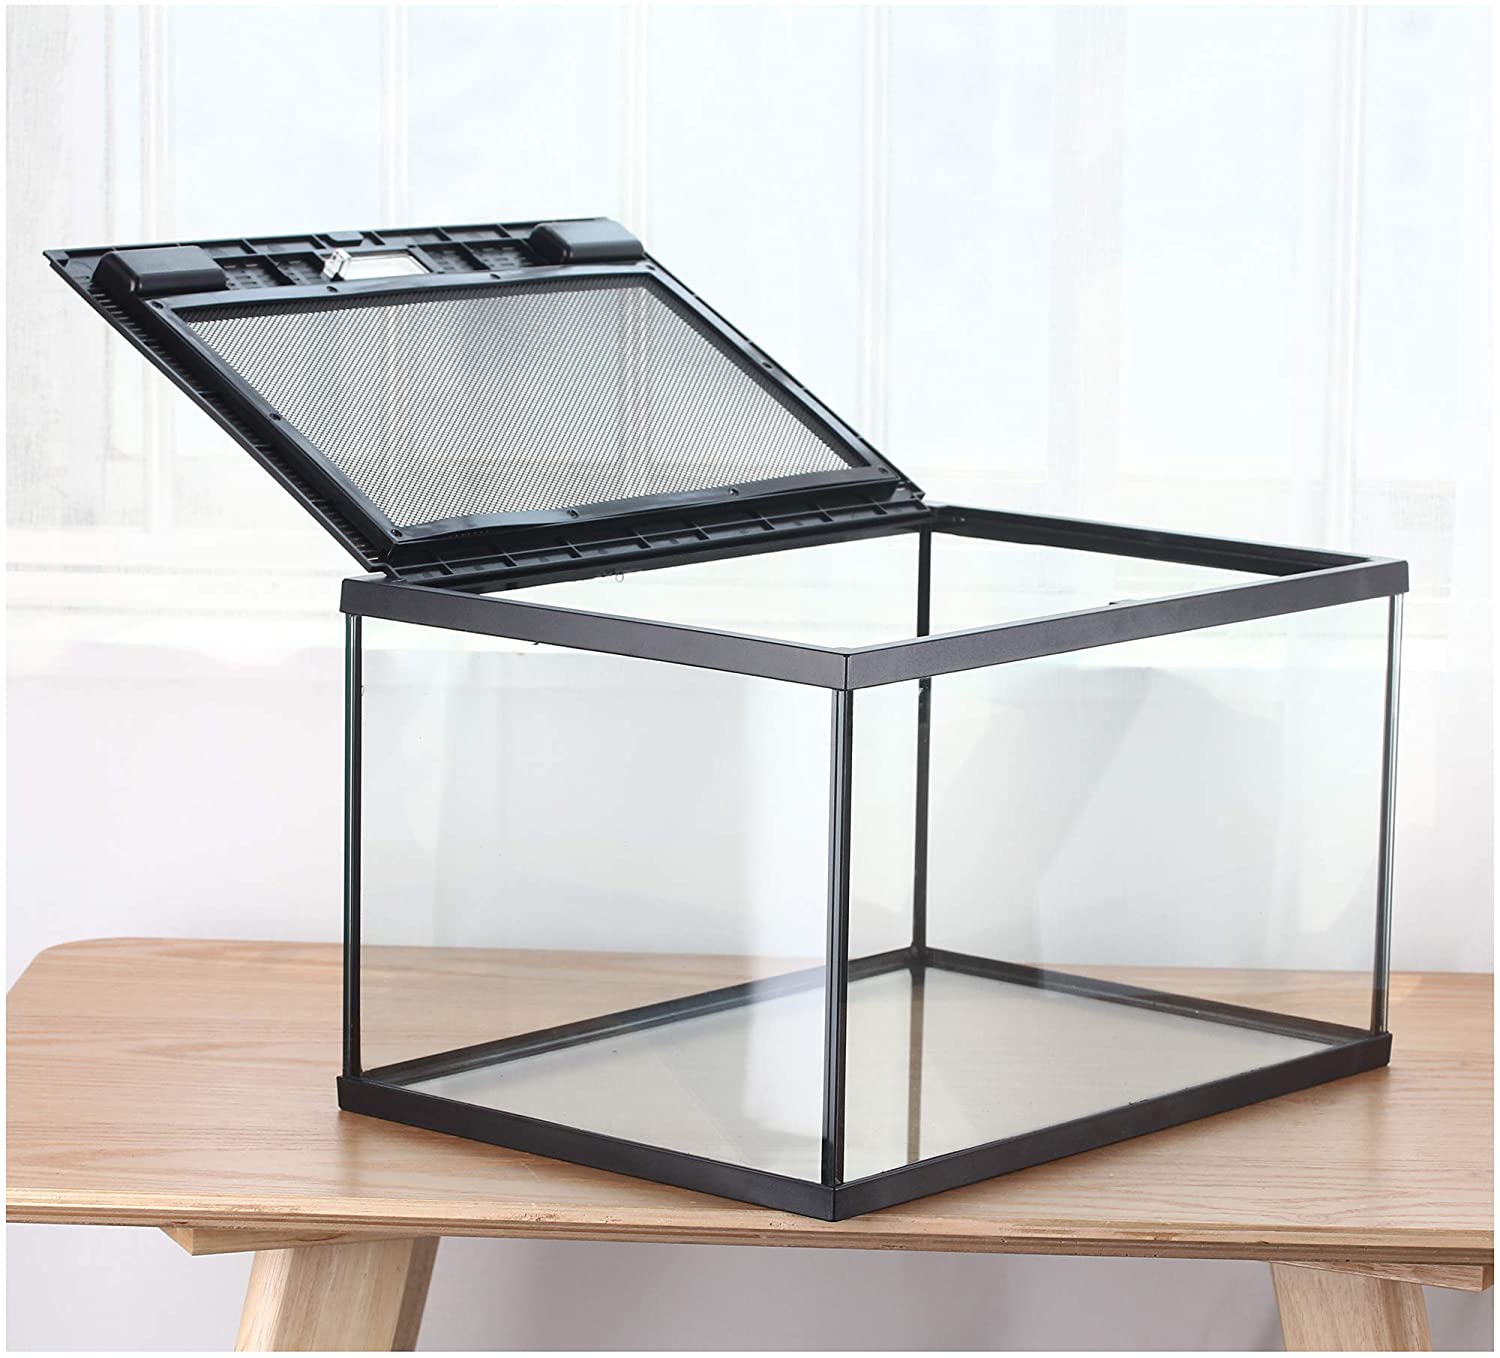 crapelles Reptile Rectangle Terrarium Pet Supplies breeding Glass Box Large, Color Black Metal Ventilation net Door for Reptile Amphibians Insect, Transparency Clearly Visible Waterproof